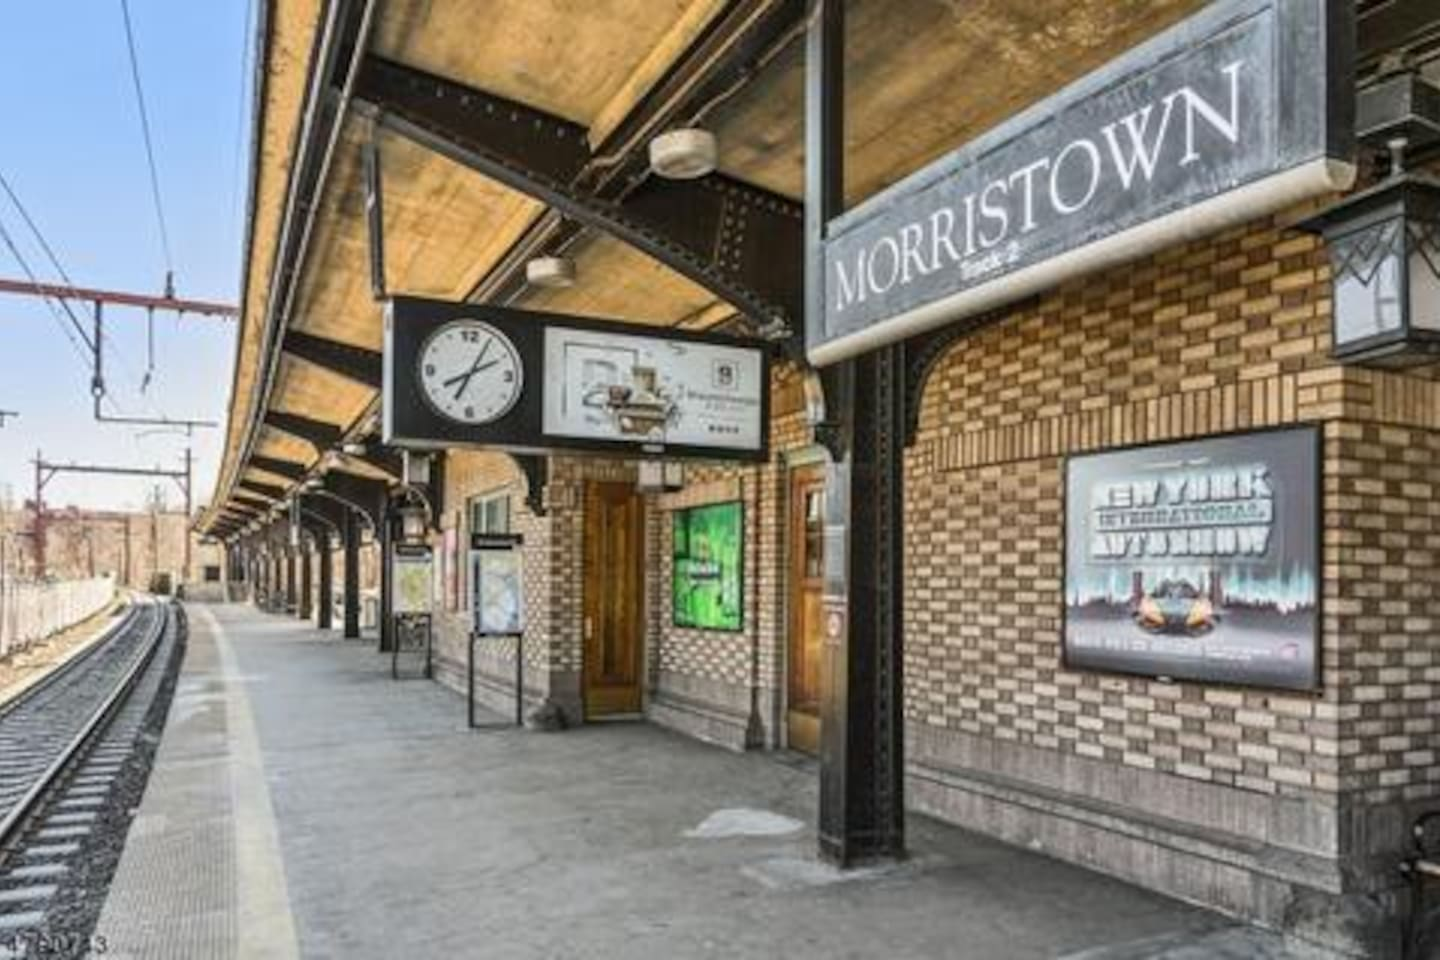 Morristown Train Station - 12 mins